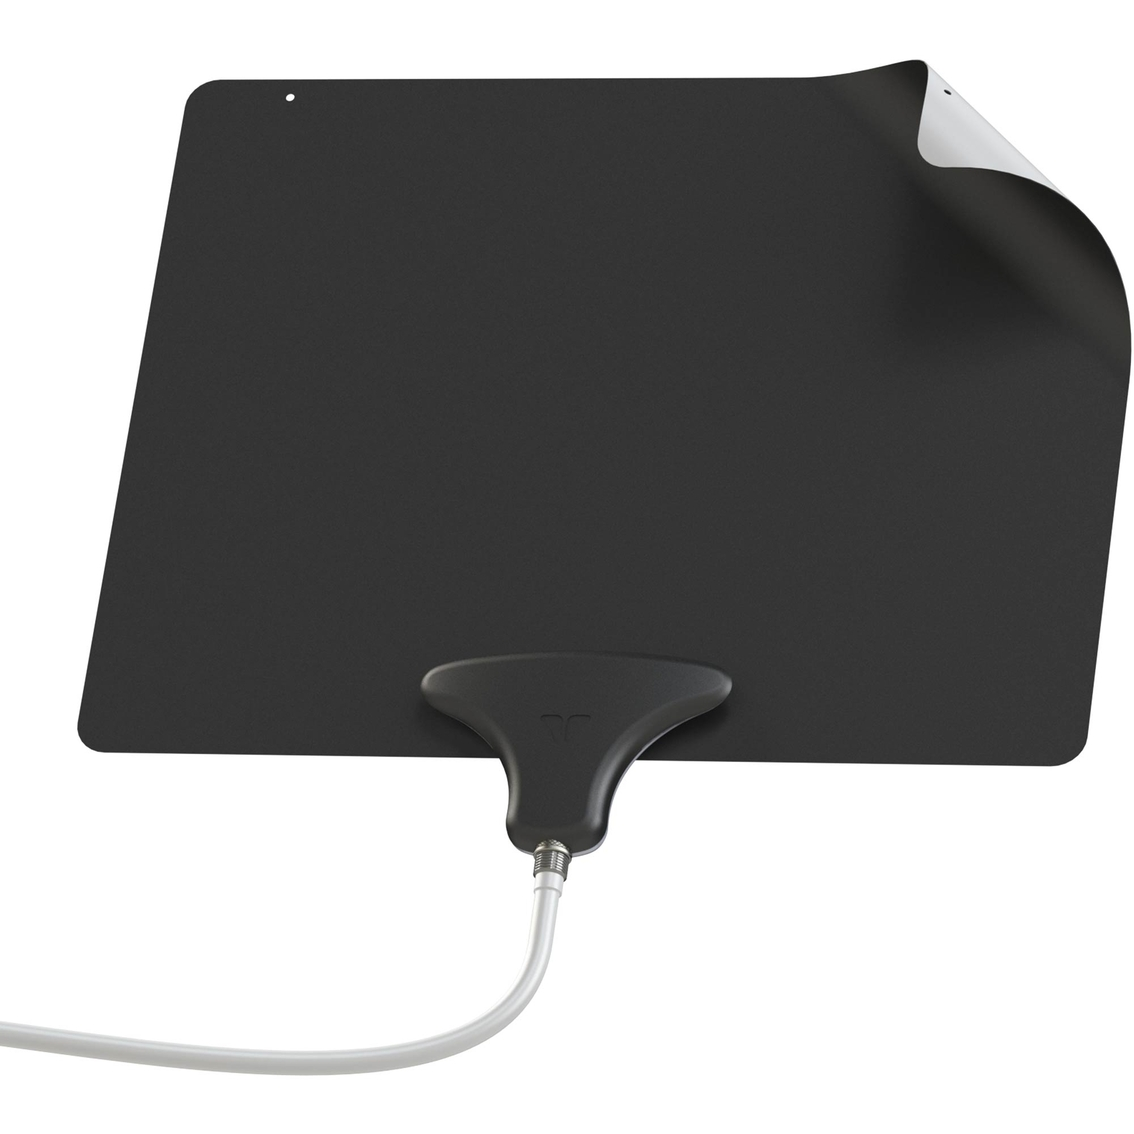 Mohu Leaf 30 Hdtv Antenna - Tvs & Electronics Televisions Tv Accessories Antennas